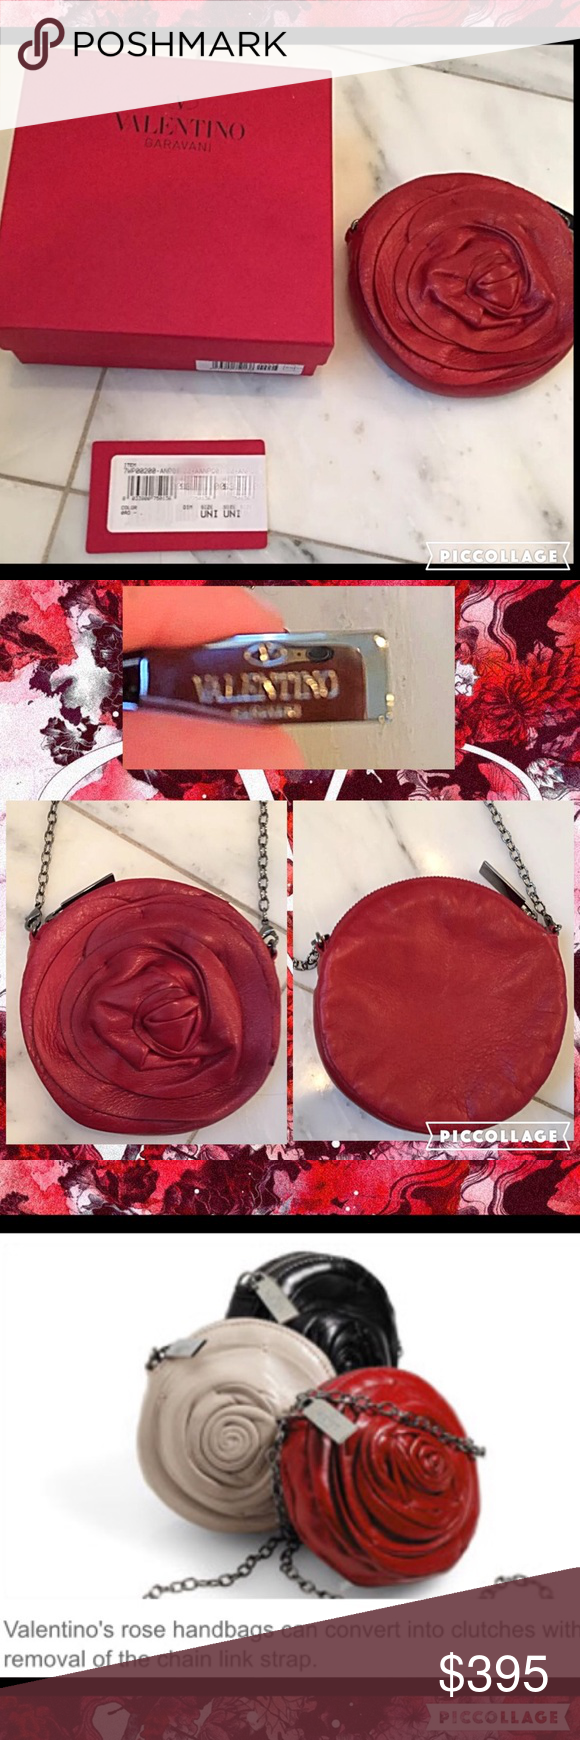 NWB! Auth VALENTINO Rosette Mini Chain Bag!! This is a Gorgeous Authentic Valentino Garavani red leather rosette mini with detachable chain. You can wear as a shoulder, cross-body or remove the chain for a mini clutch! This beautiful bag has soft, supple leather construction and silver-tone metal hardware. Round shape design with beautiful hand stitched layers. Comes with tags and original box! Perfect addition for your designer bag collection! Great for Christmas! Valentino Bags Crossbody…